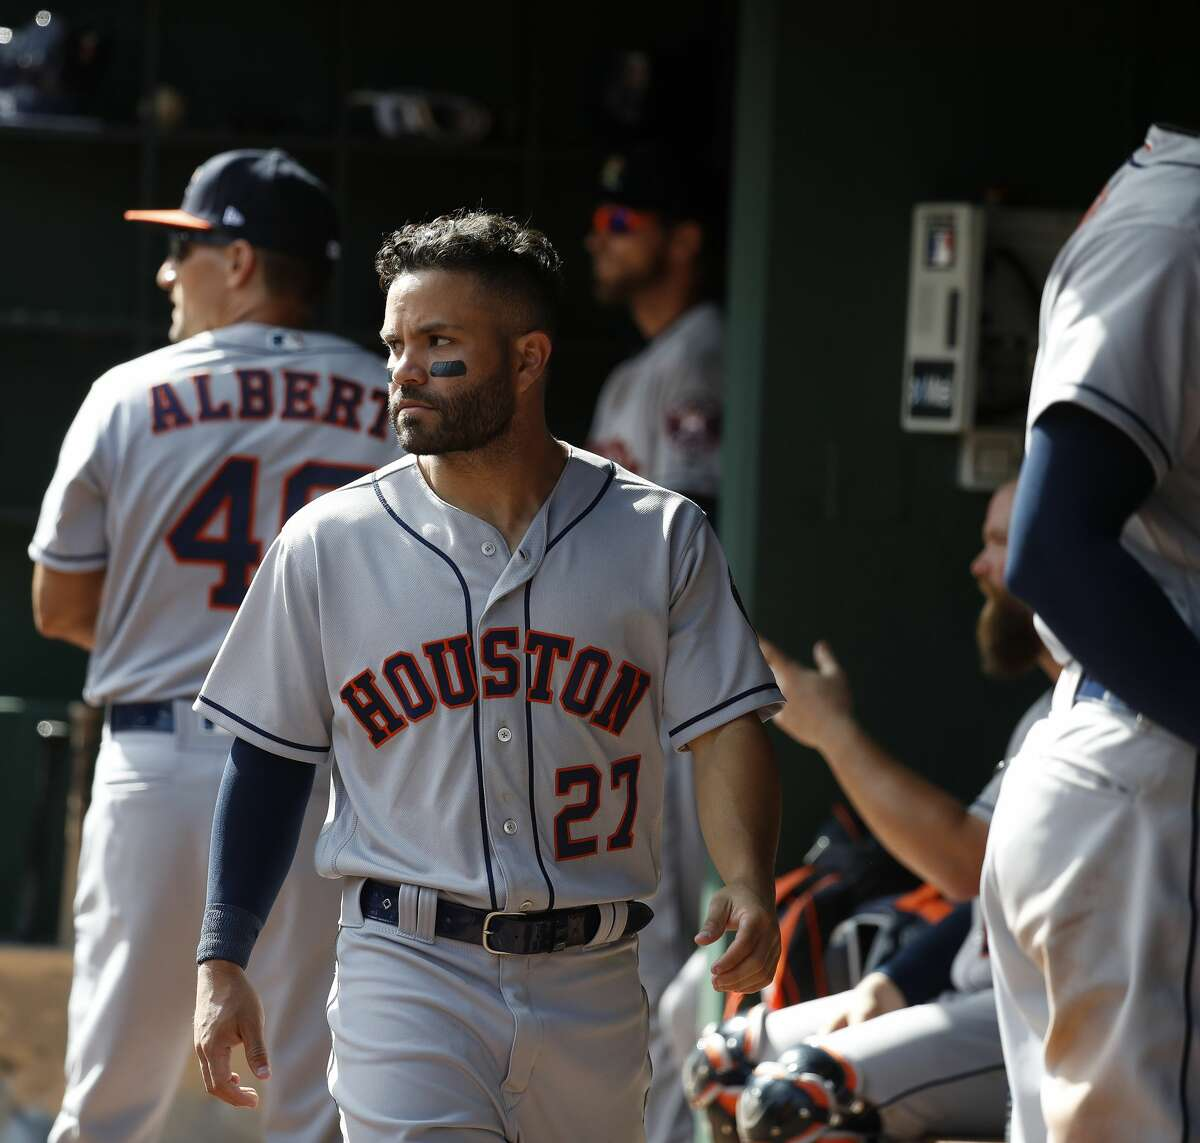 Houston Astros second baseman Jose Altuve (27) in the dugout in the ninth inning of Opening Day at Globe Life Park, Thursday, March 29, 2018, in Arlington. ( Karen Warren / Houston Chronicle )